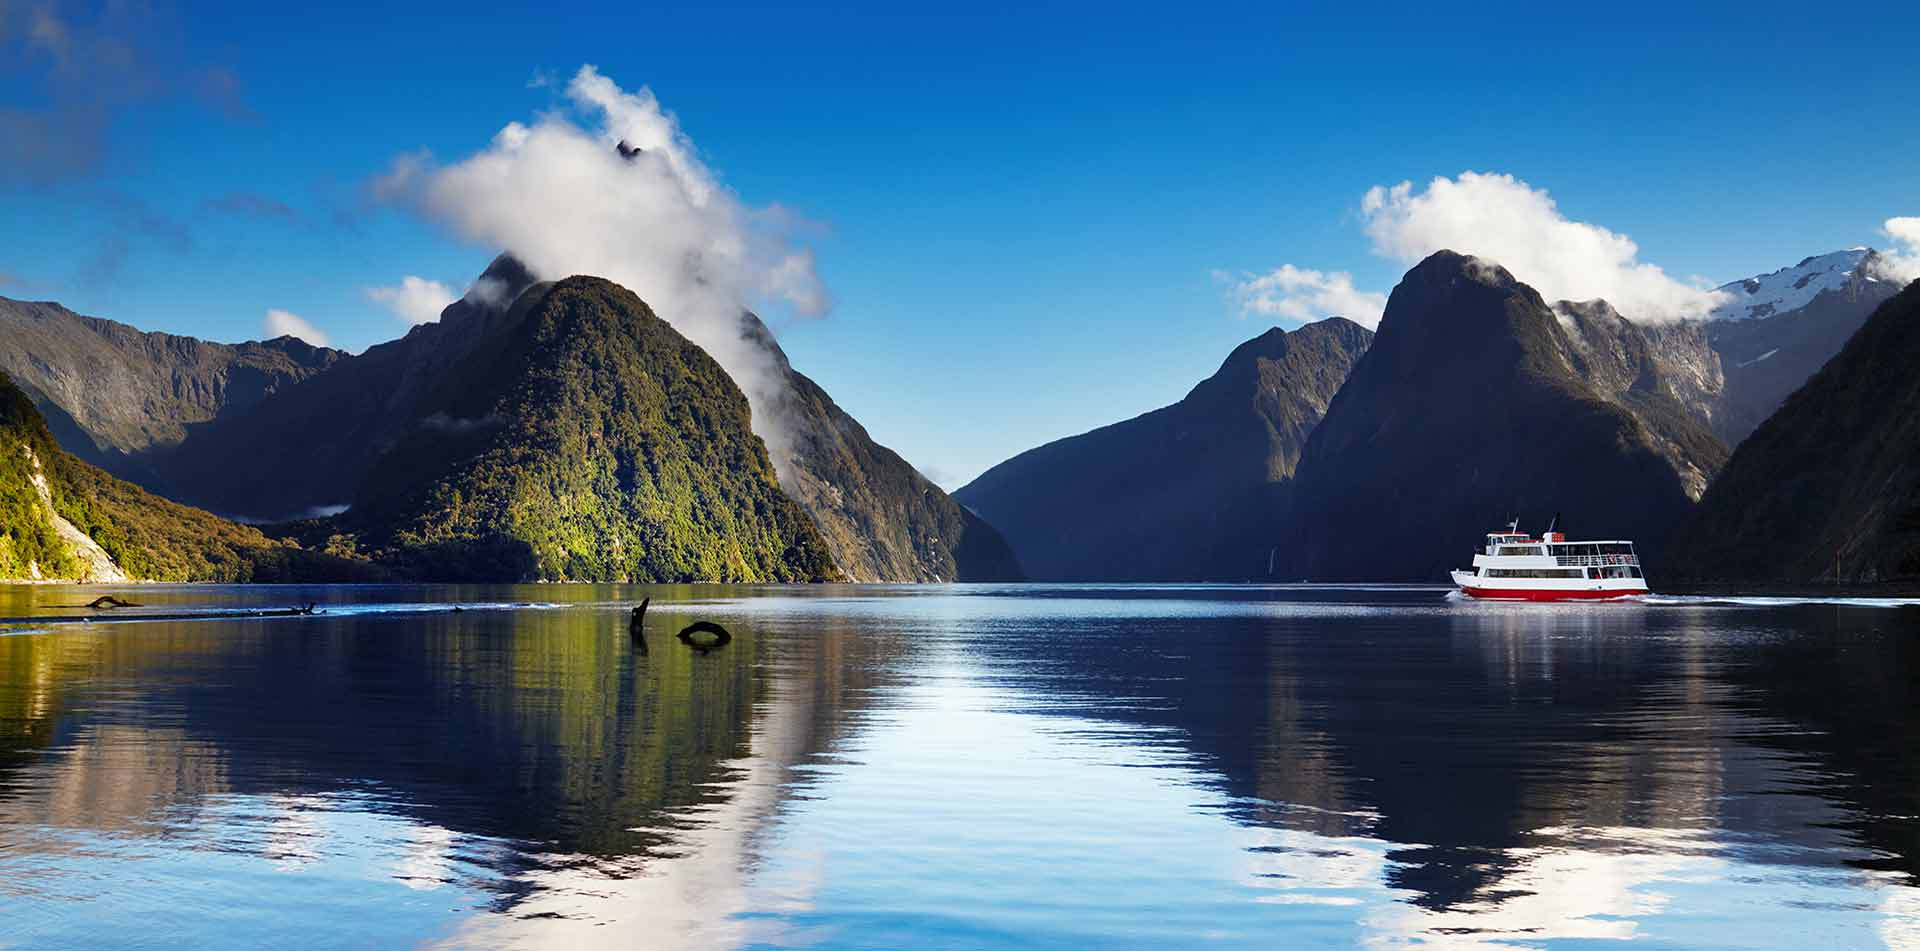 Oceania New Zealand South Island boat on peaceful waters of Milford Sound - luxury vacation destinations